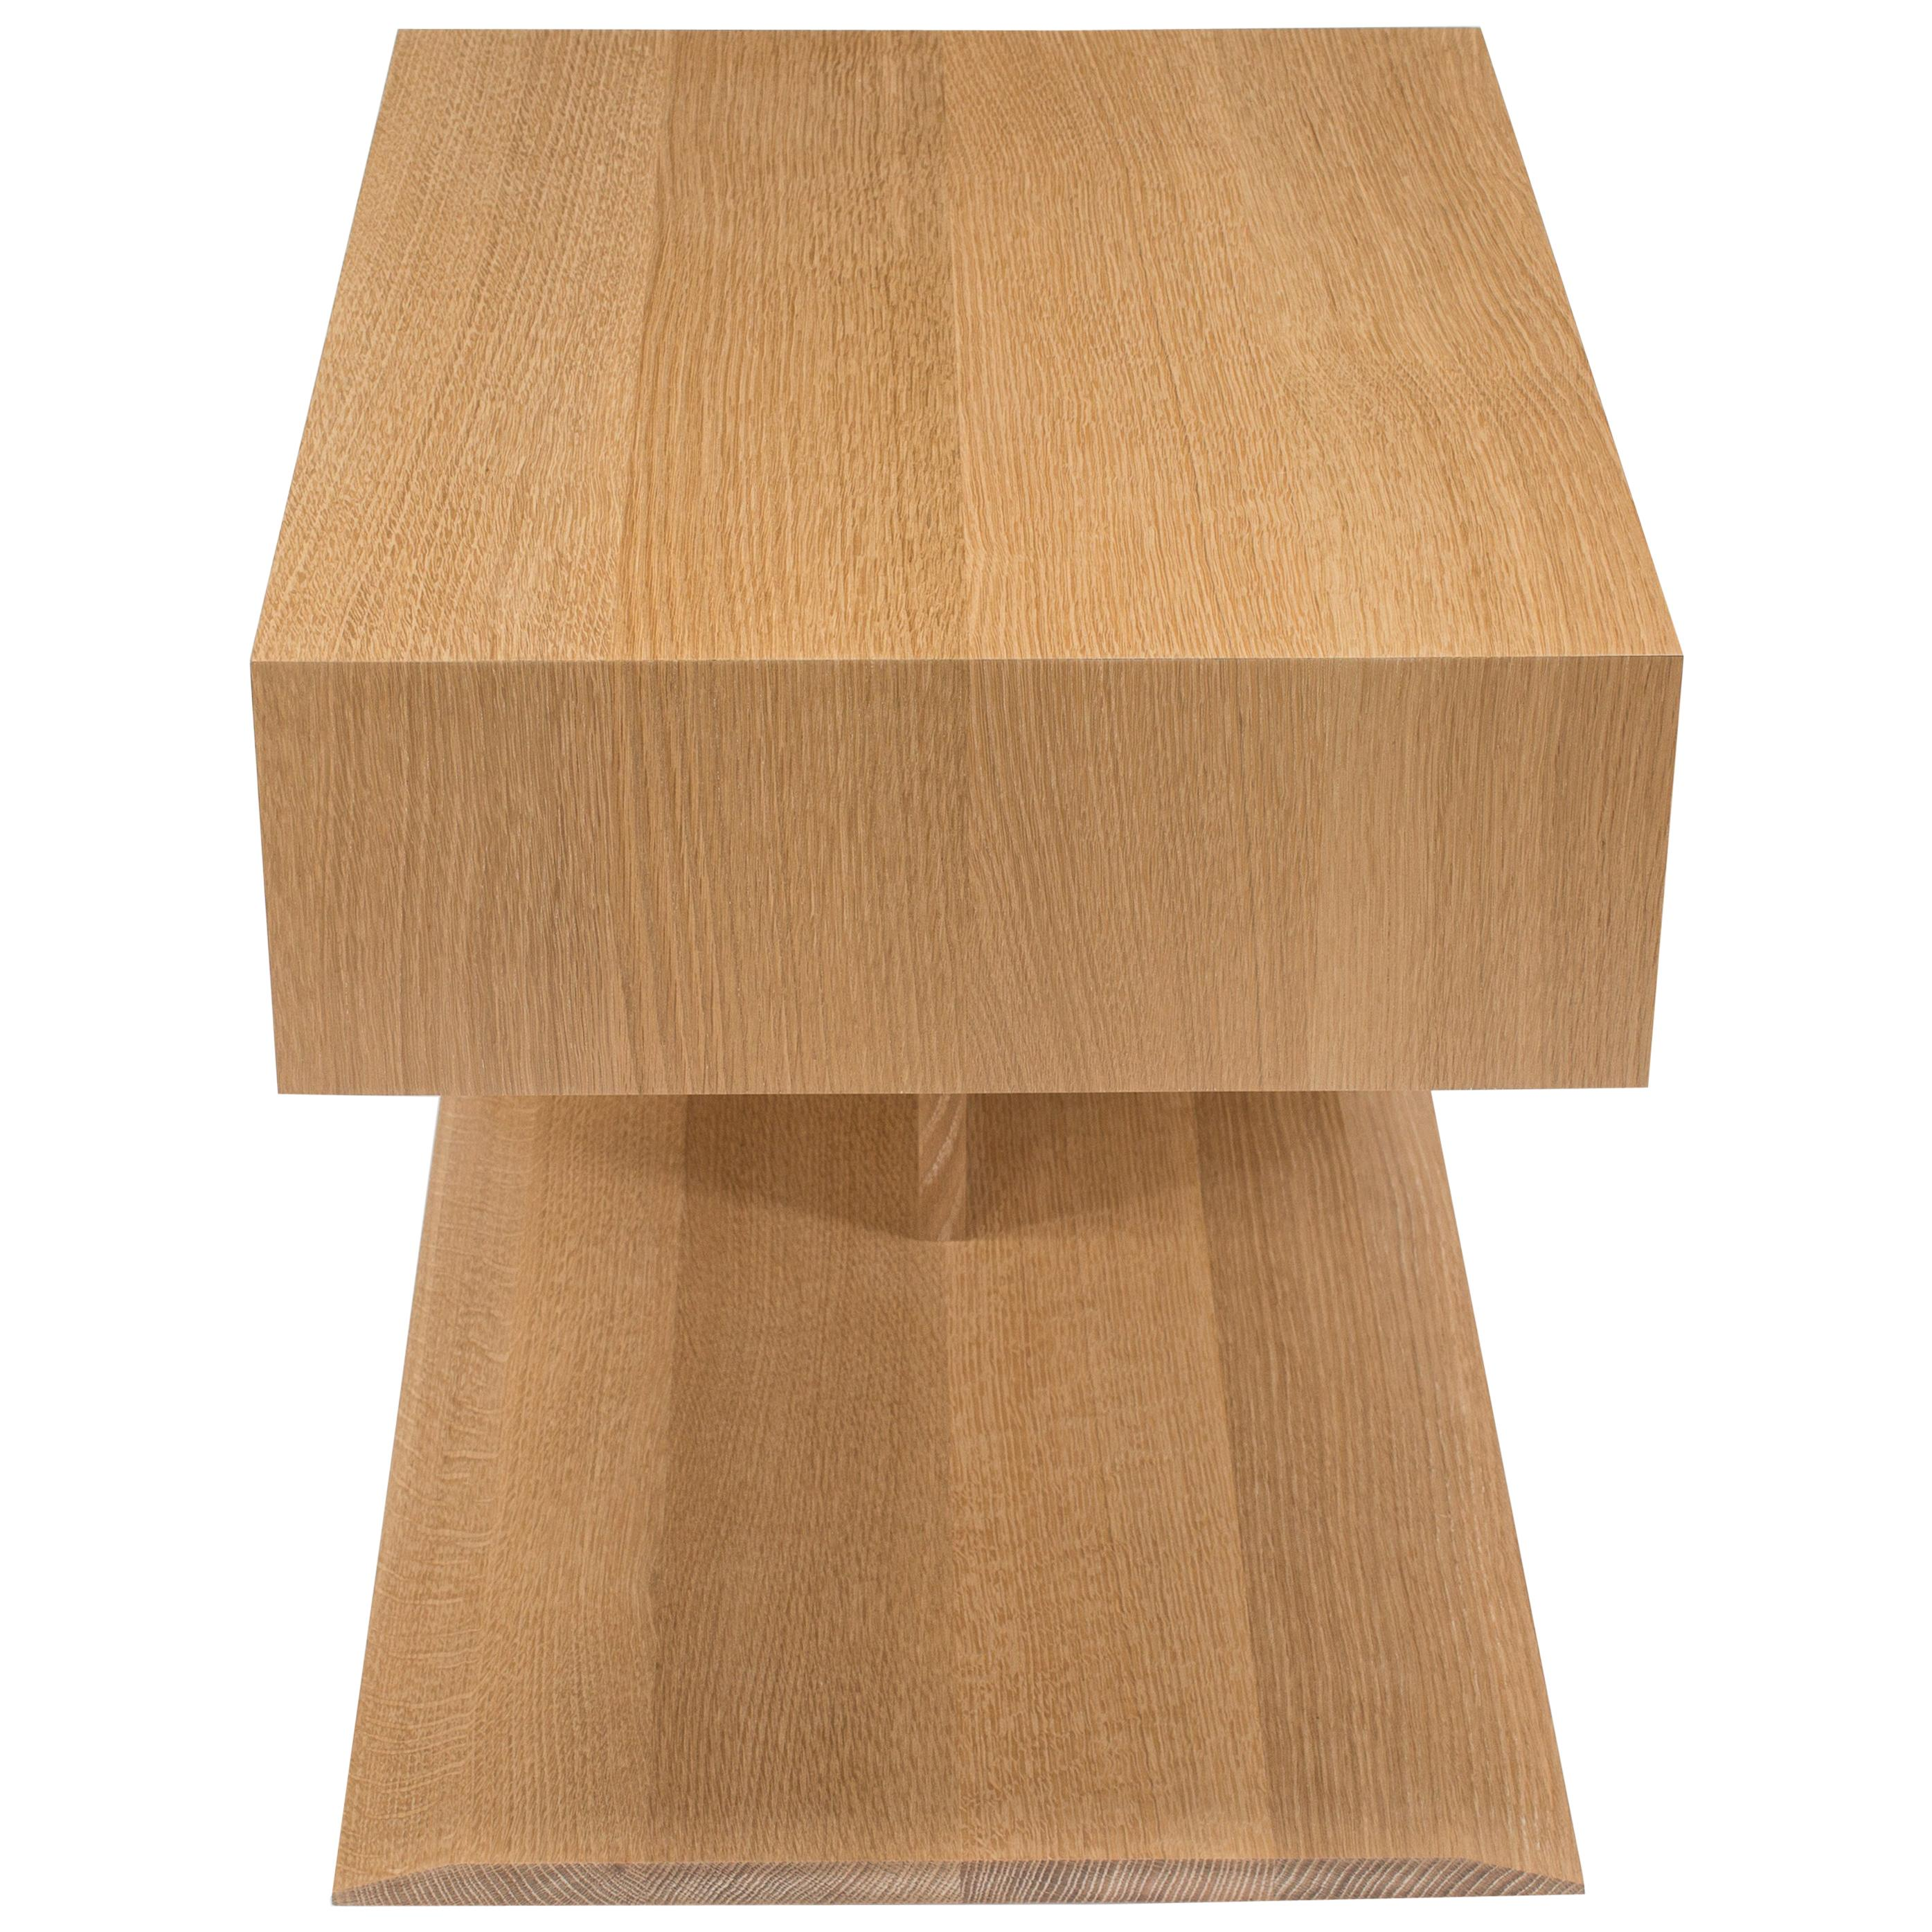 Modern Wood End Table in Solid White Oak, by Studio DiPaolo